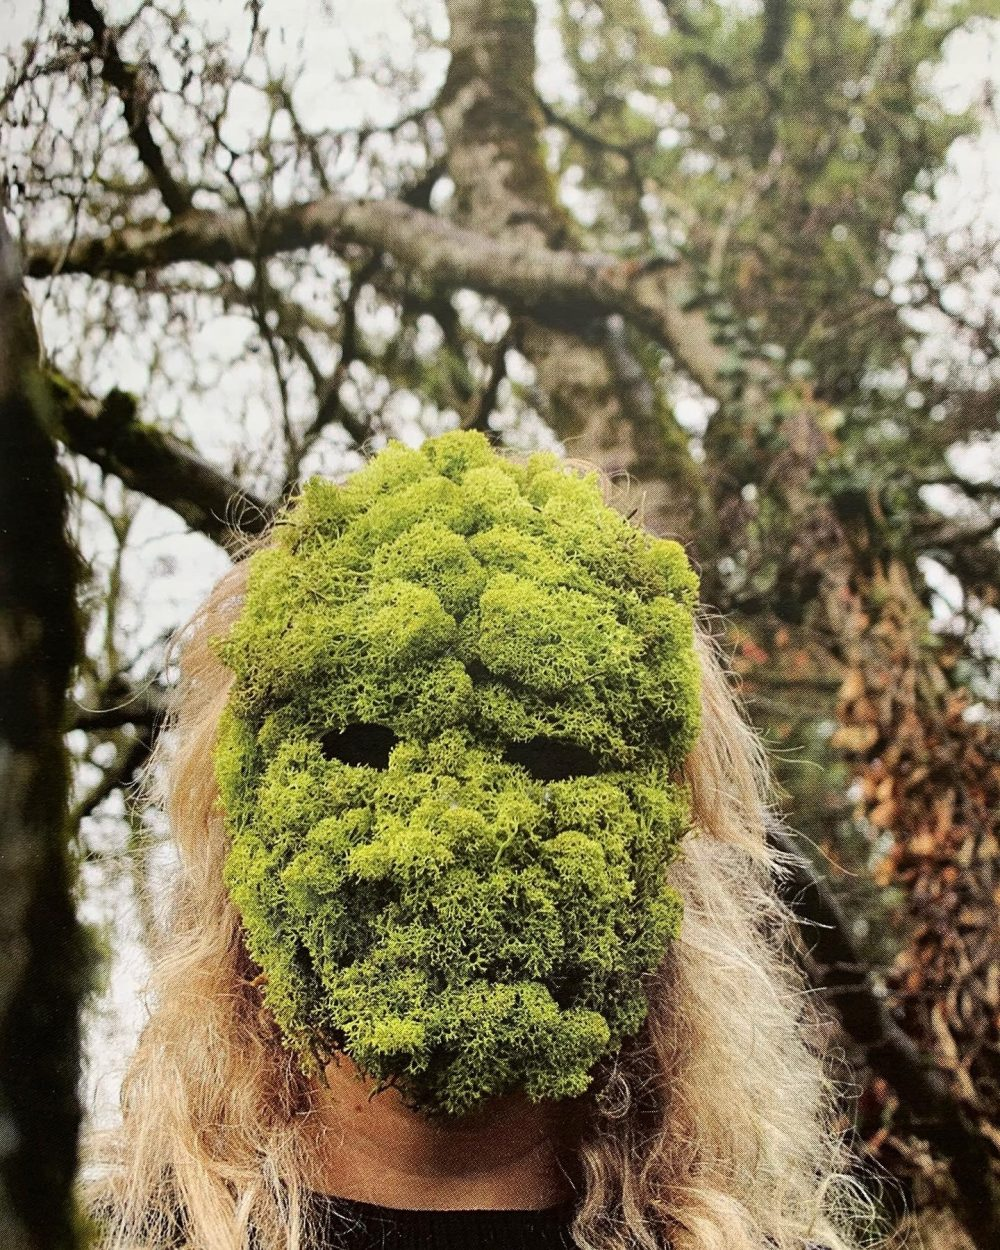 Annabel Pettigrew. A grainy colour photograph of a person with long light blonde hair, positioned in a forest setting, with a mask over their face made from bright green moss.